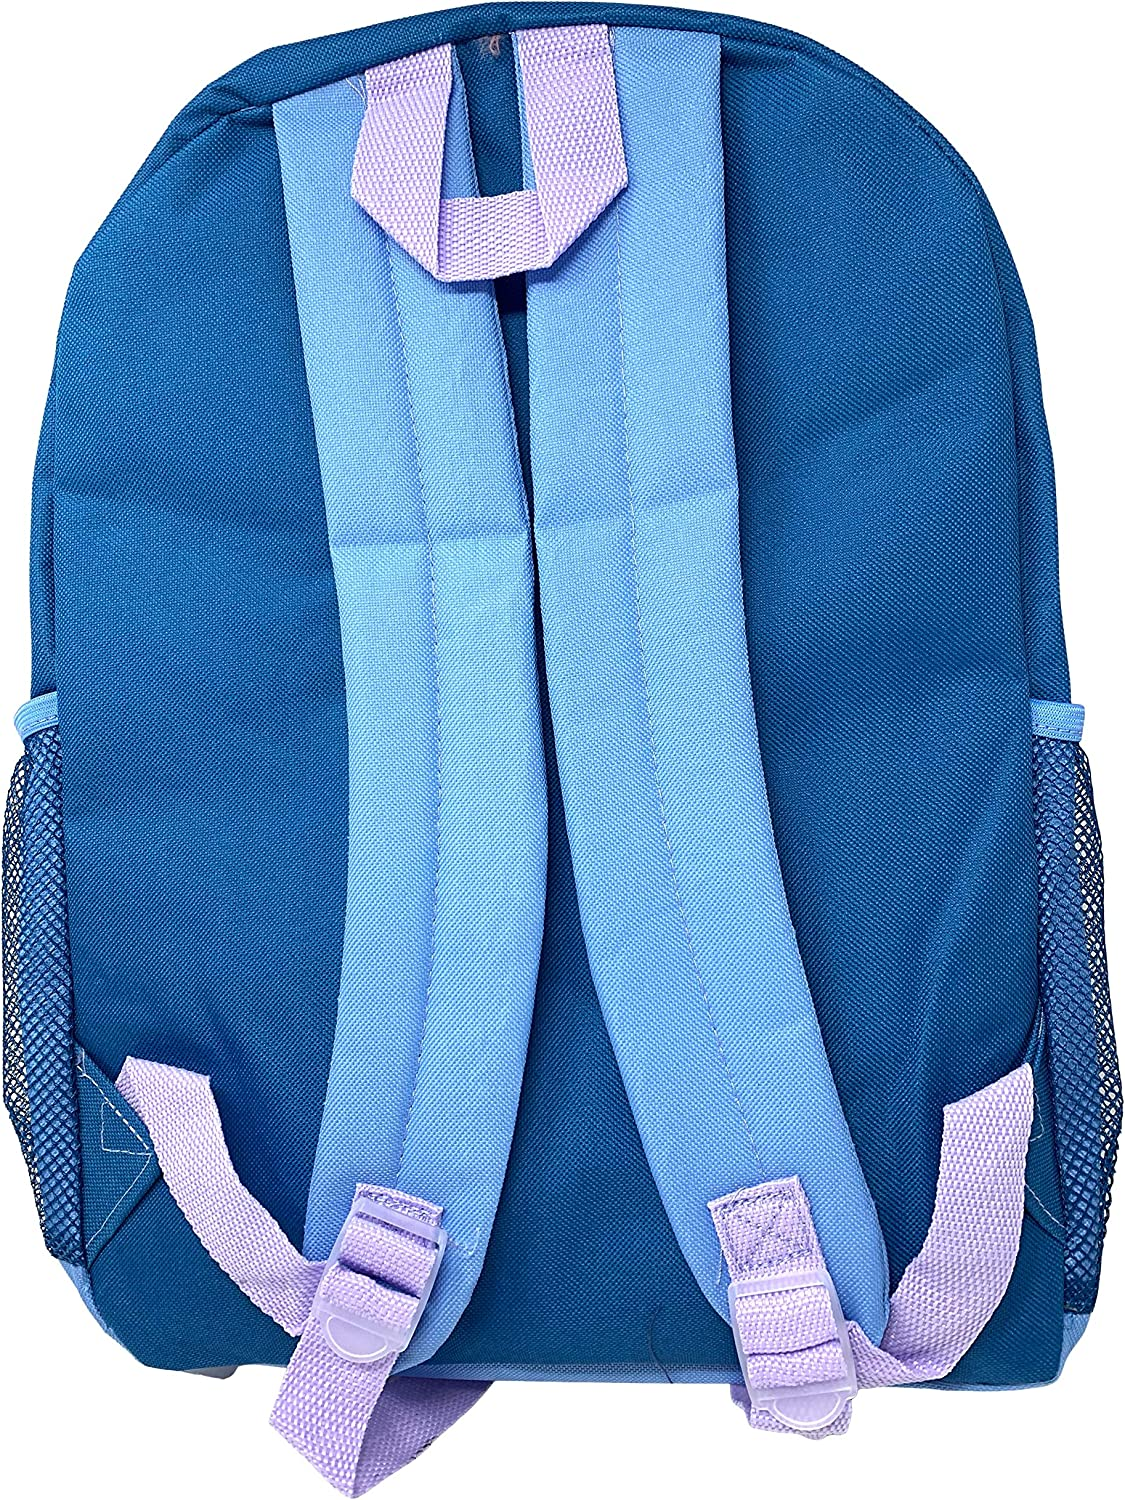 Frozen 2 16 Backpack with Embossed Front Pocket FRPU